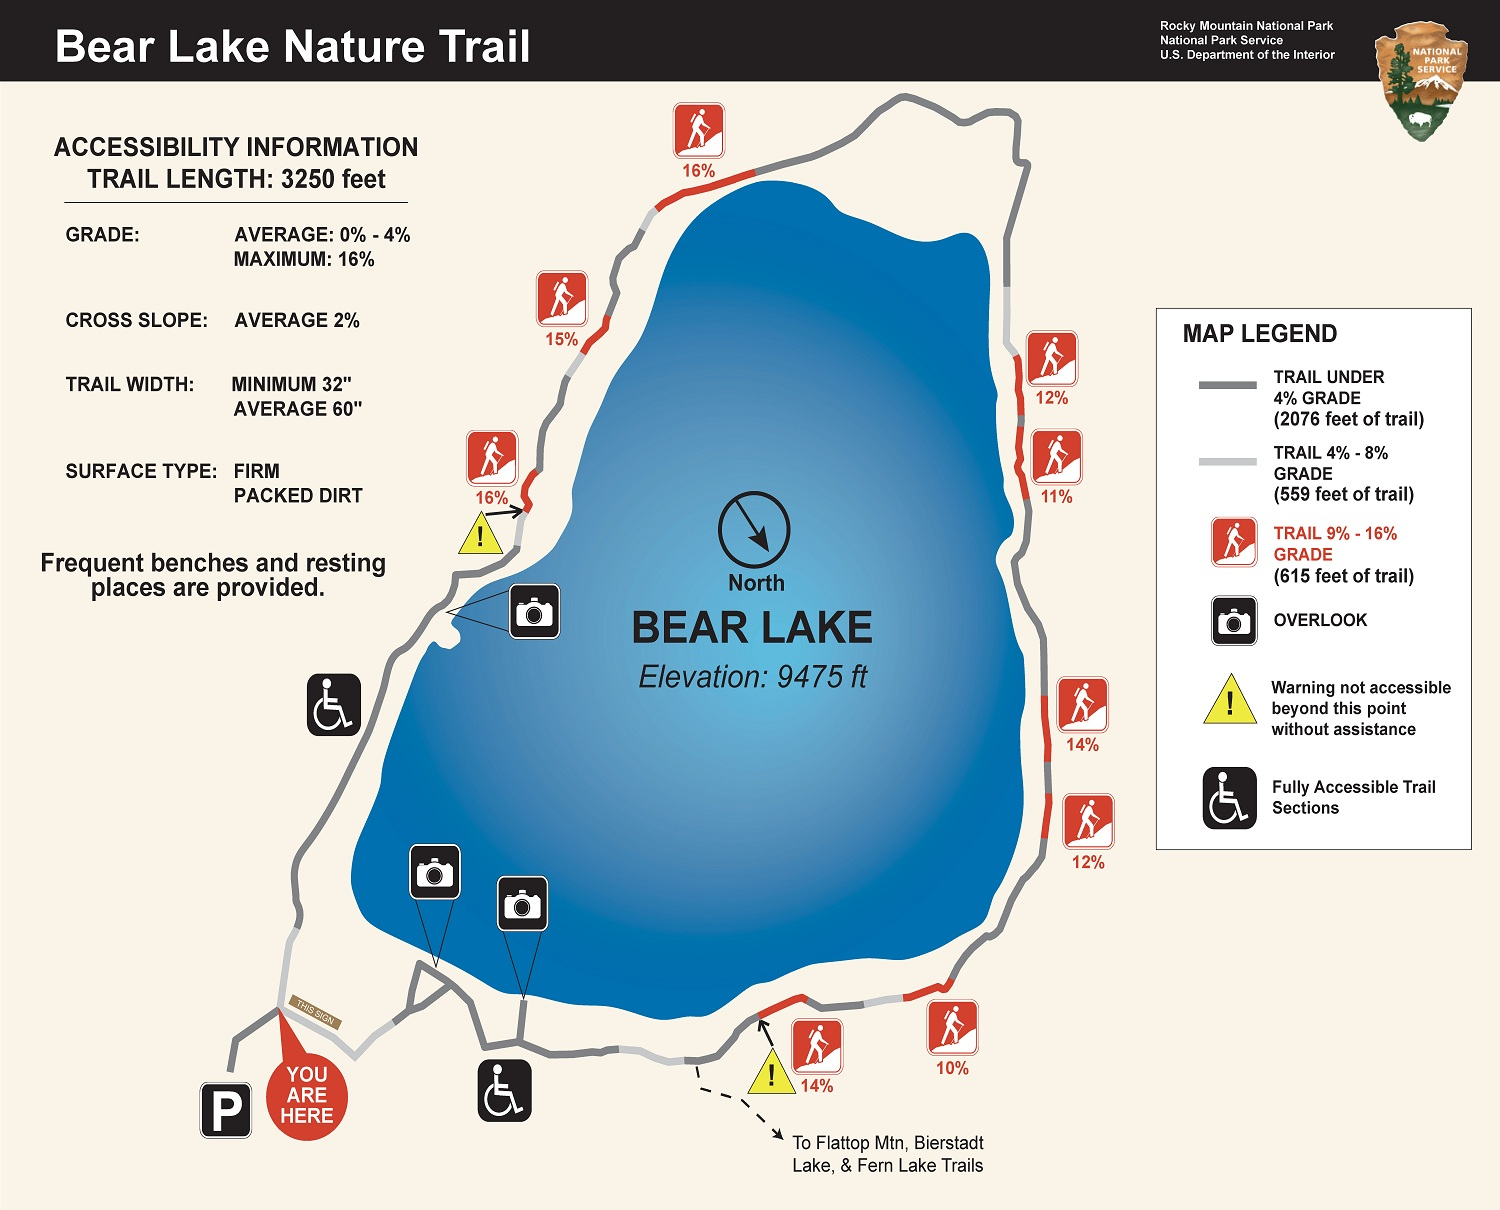 rocky mountain national park guide